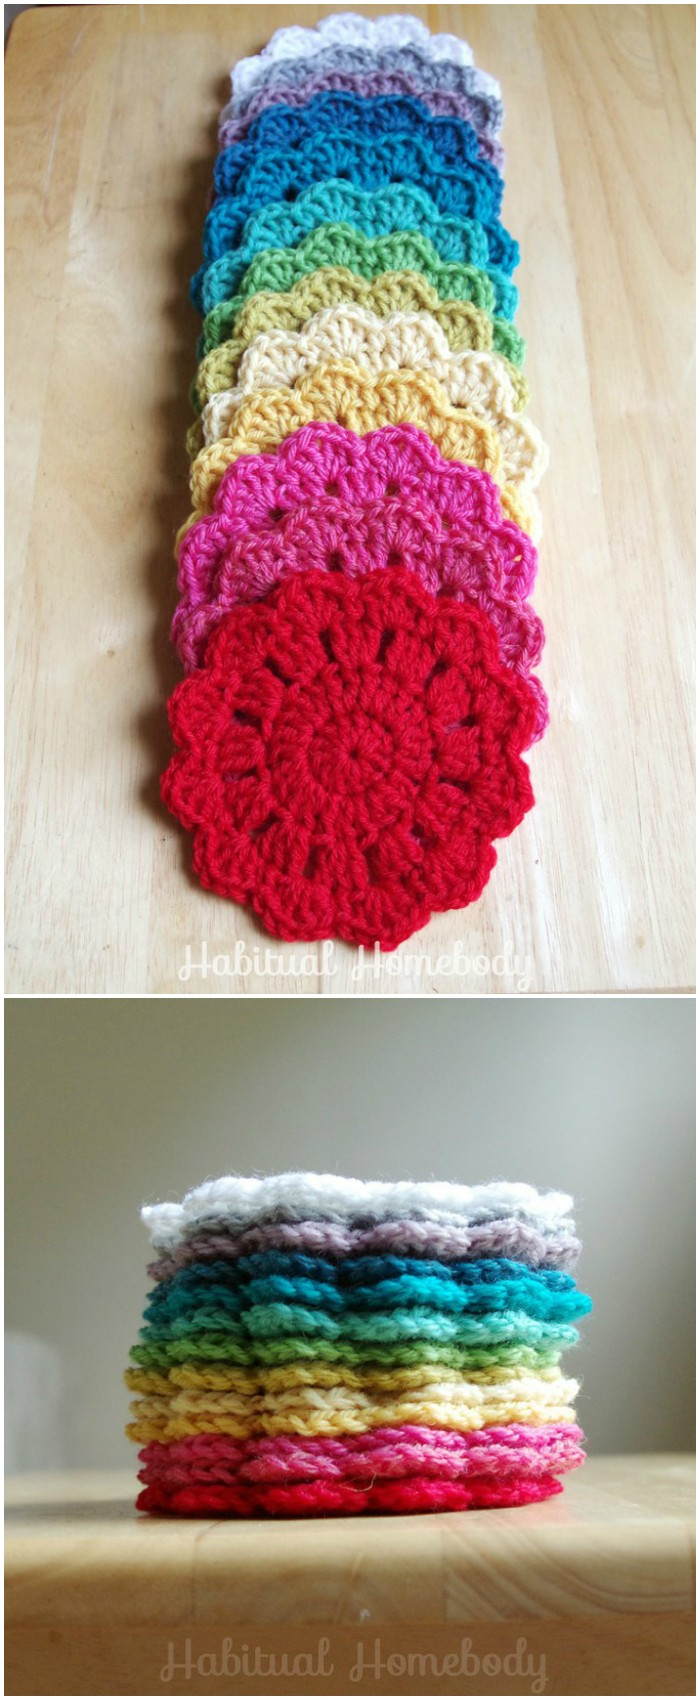 Rainbow Crochet Coasters